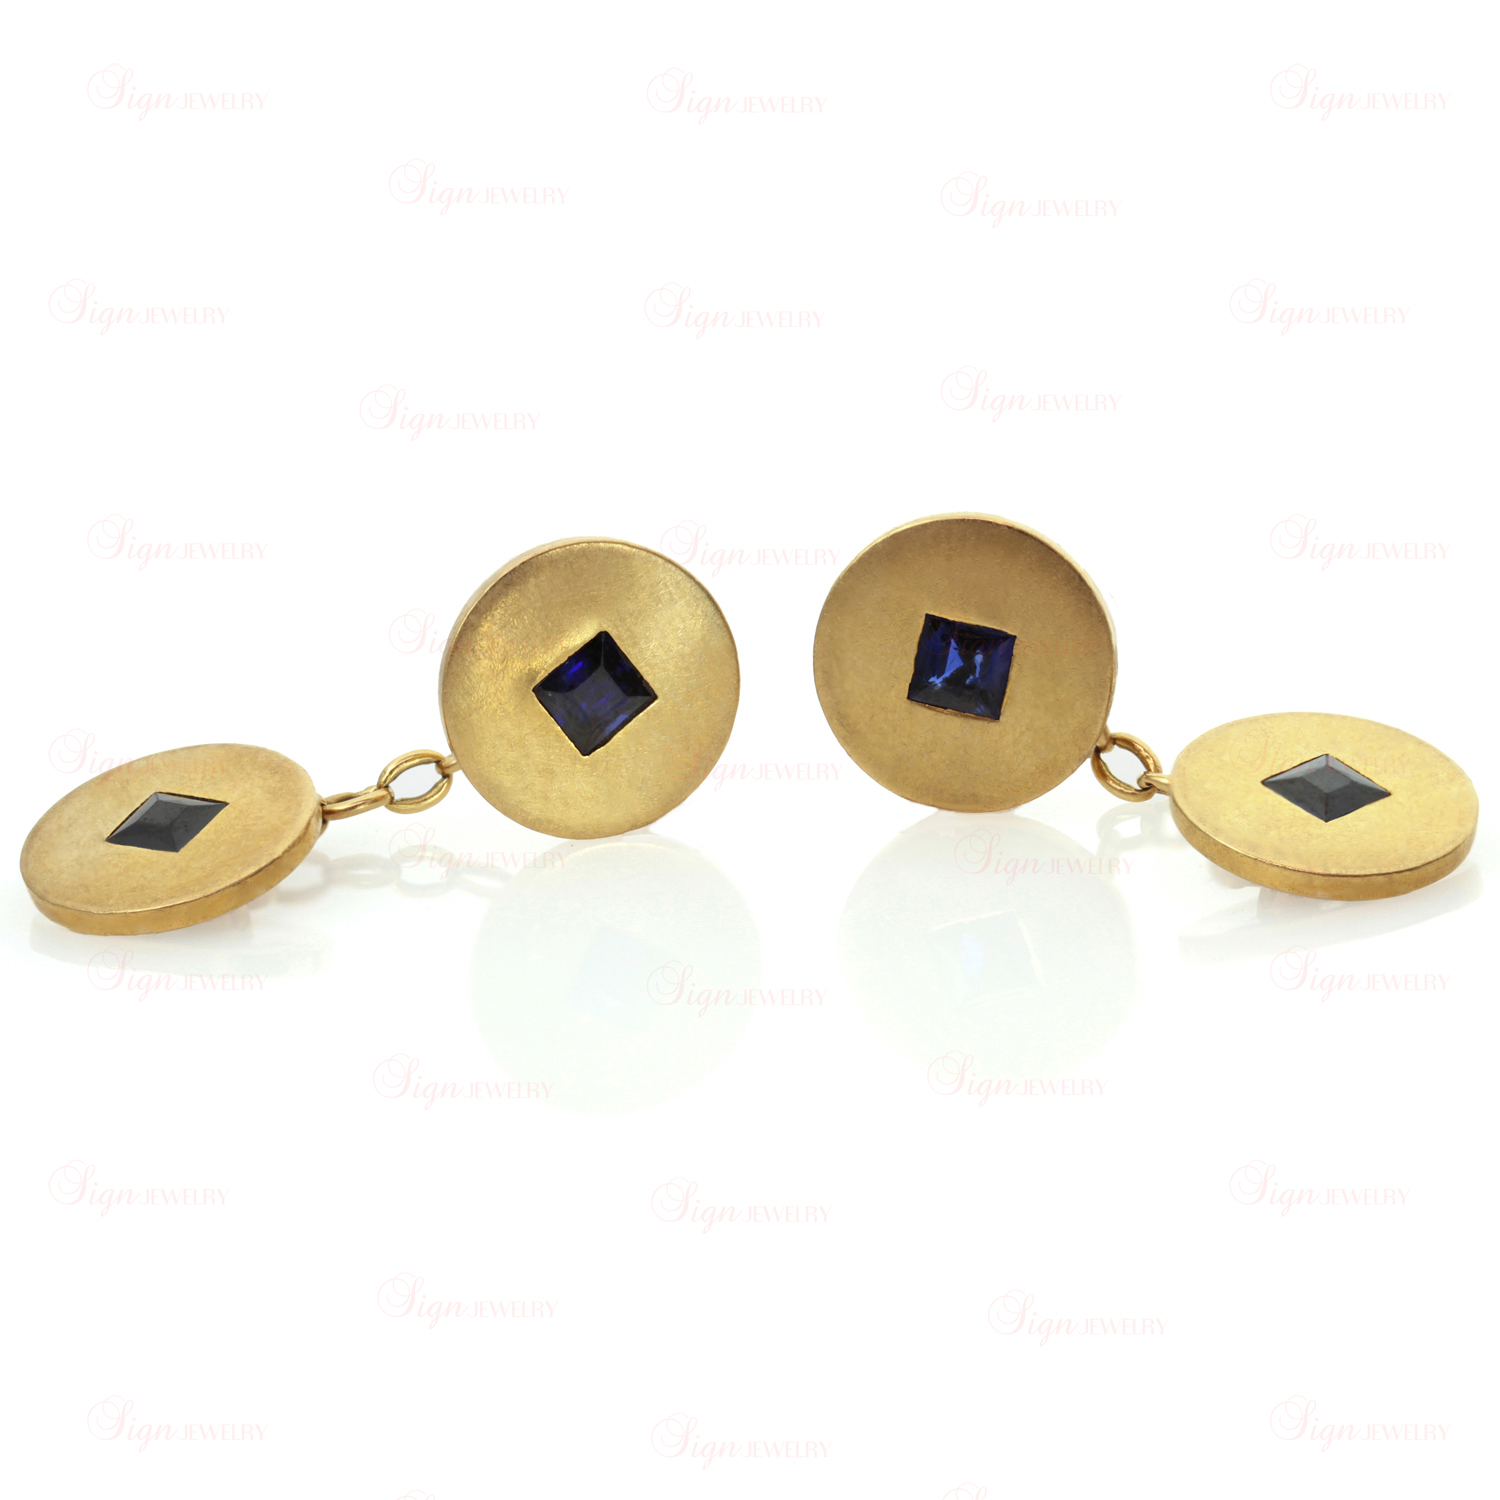 CARTIER Art Deco 18k Yellow Gold Blue Sapphire Cufflinks